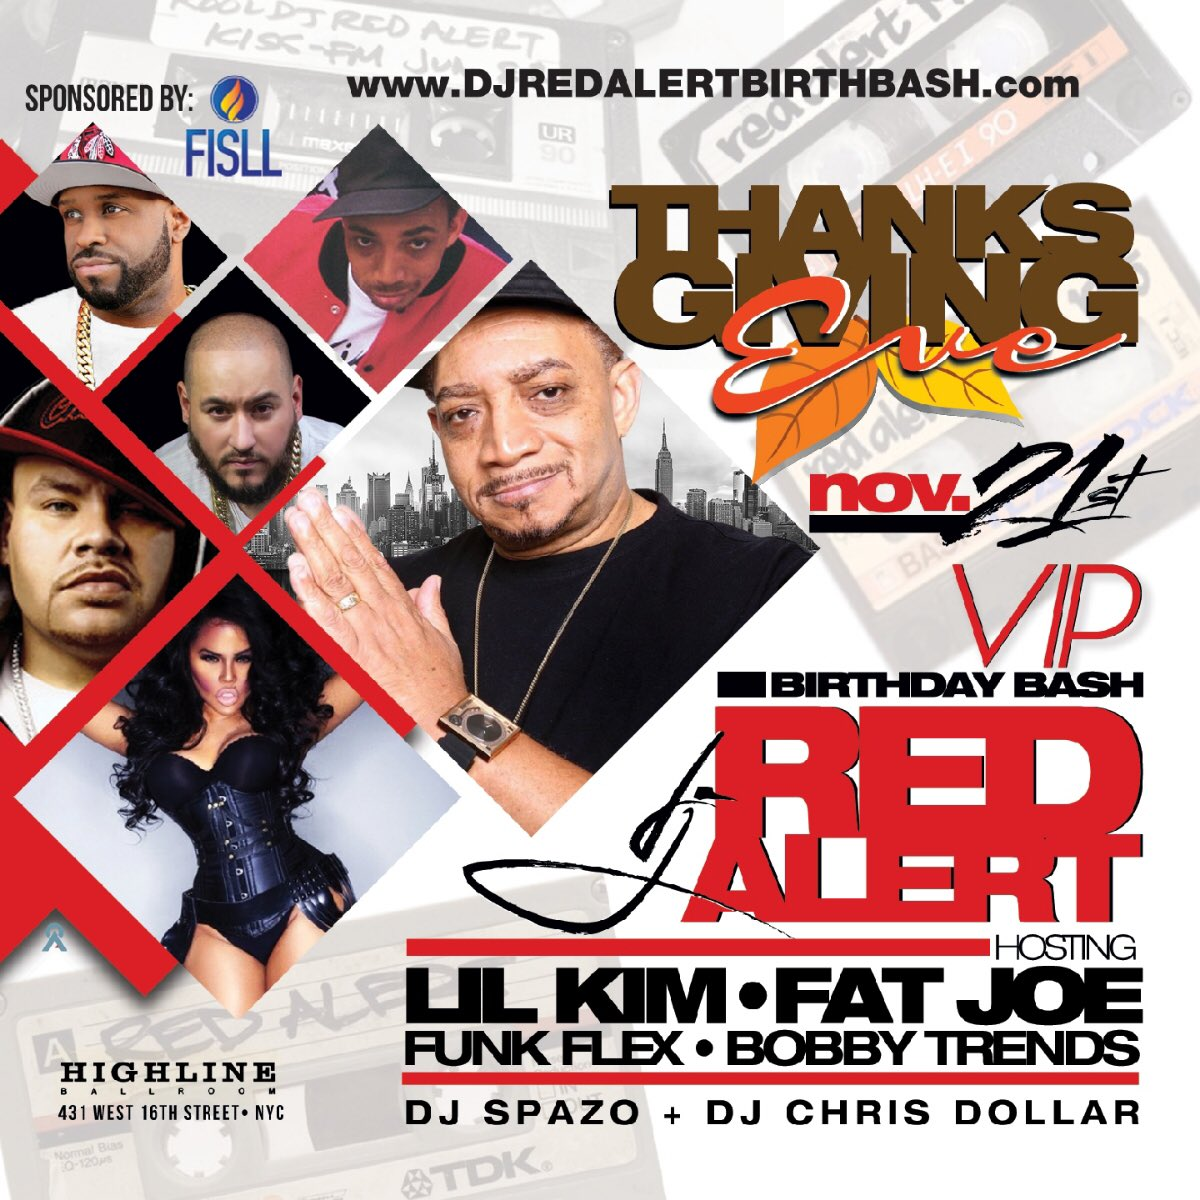 NYC!!! Starting Thanksgiving with y'all tonight along my boys @funkflex @fatjoe and more. ???????????? https://t.co/Us80GUgybV